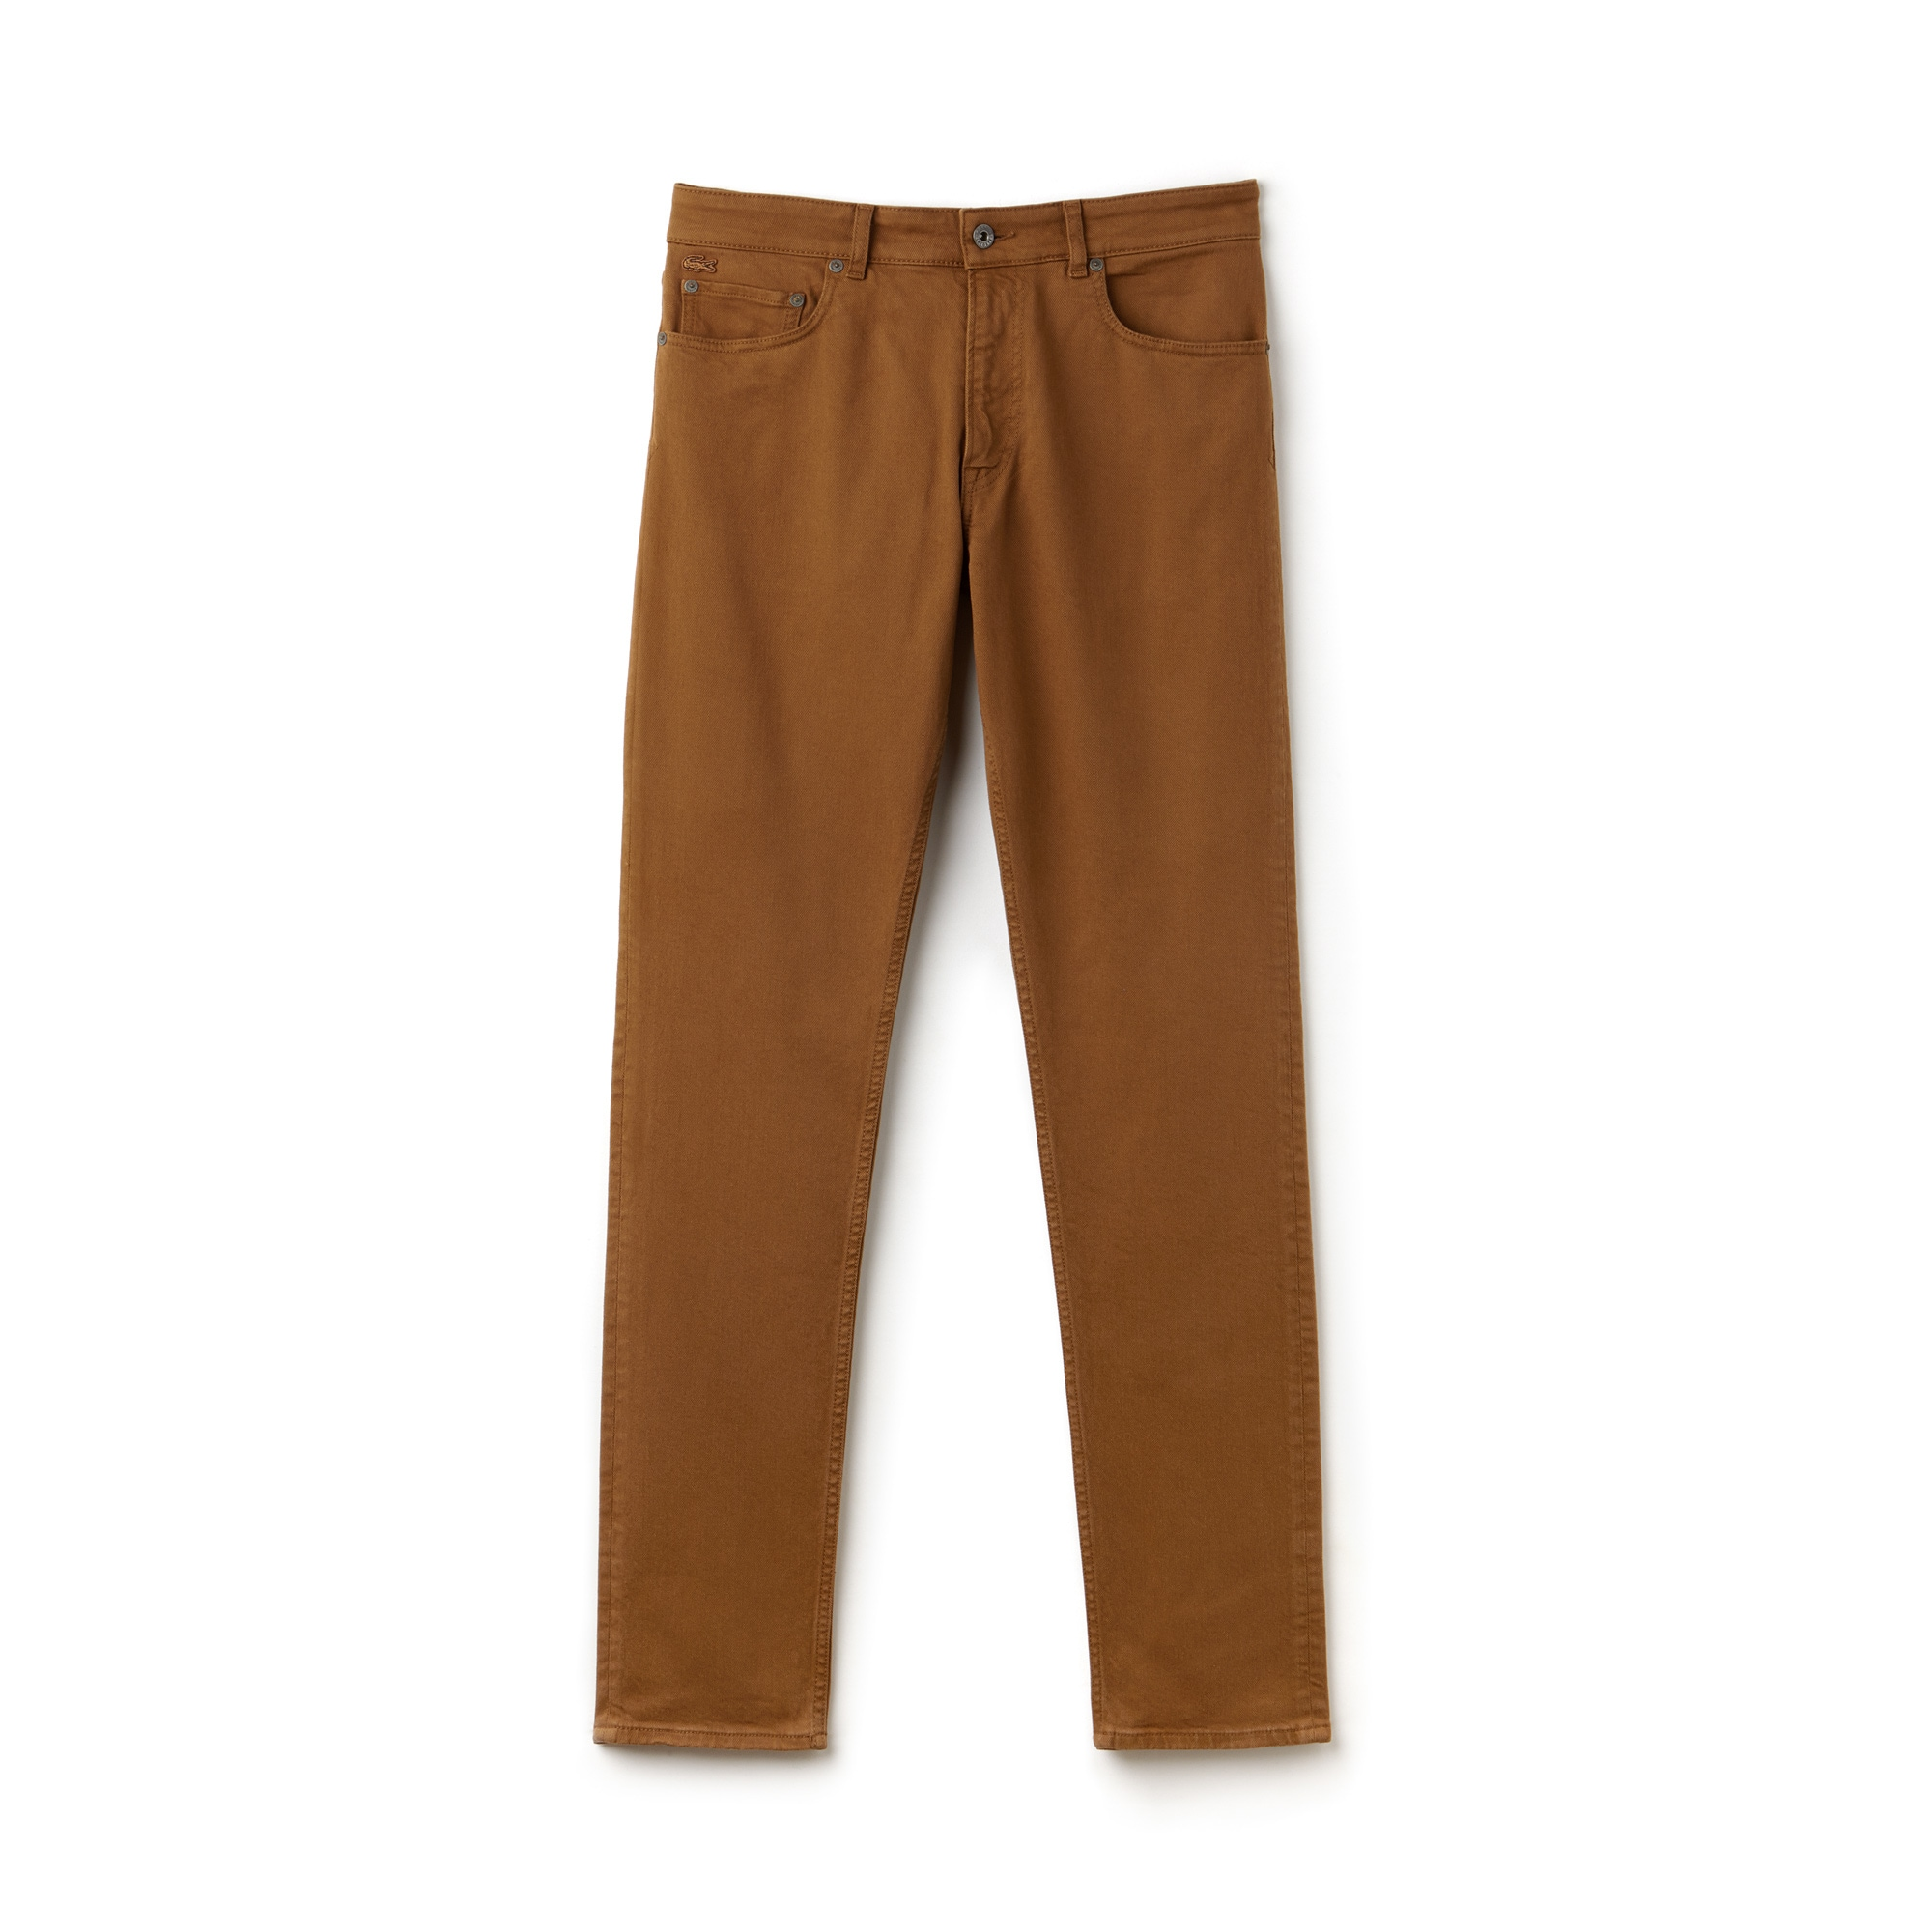 Men's Slim Fit 5-Pocket Twill Pants